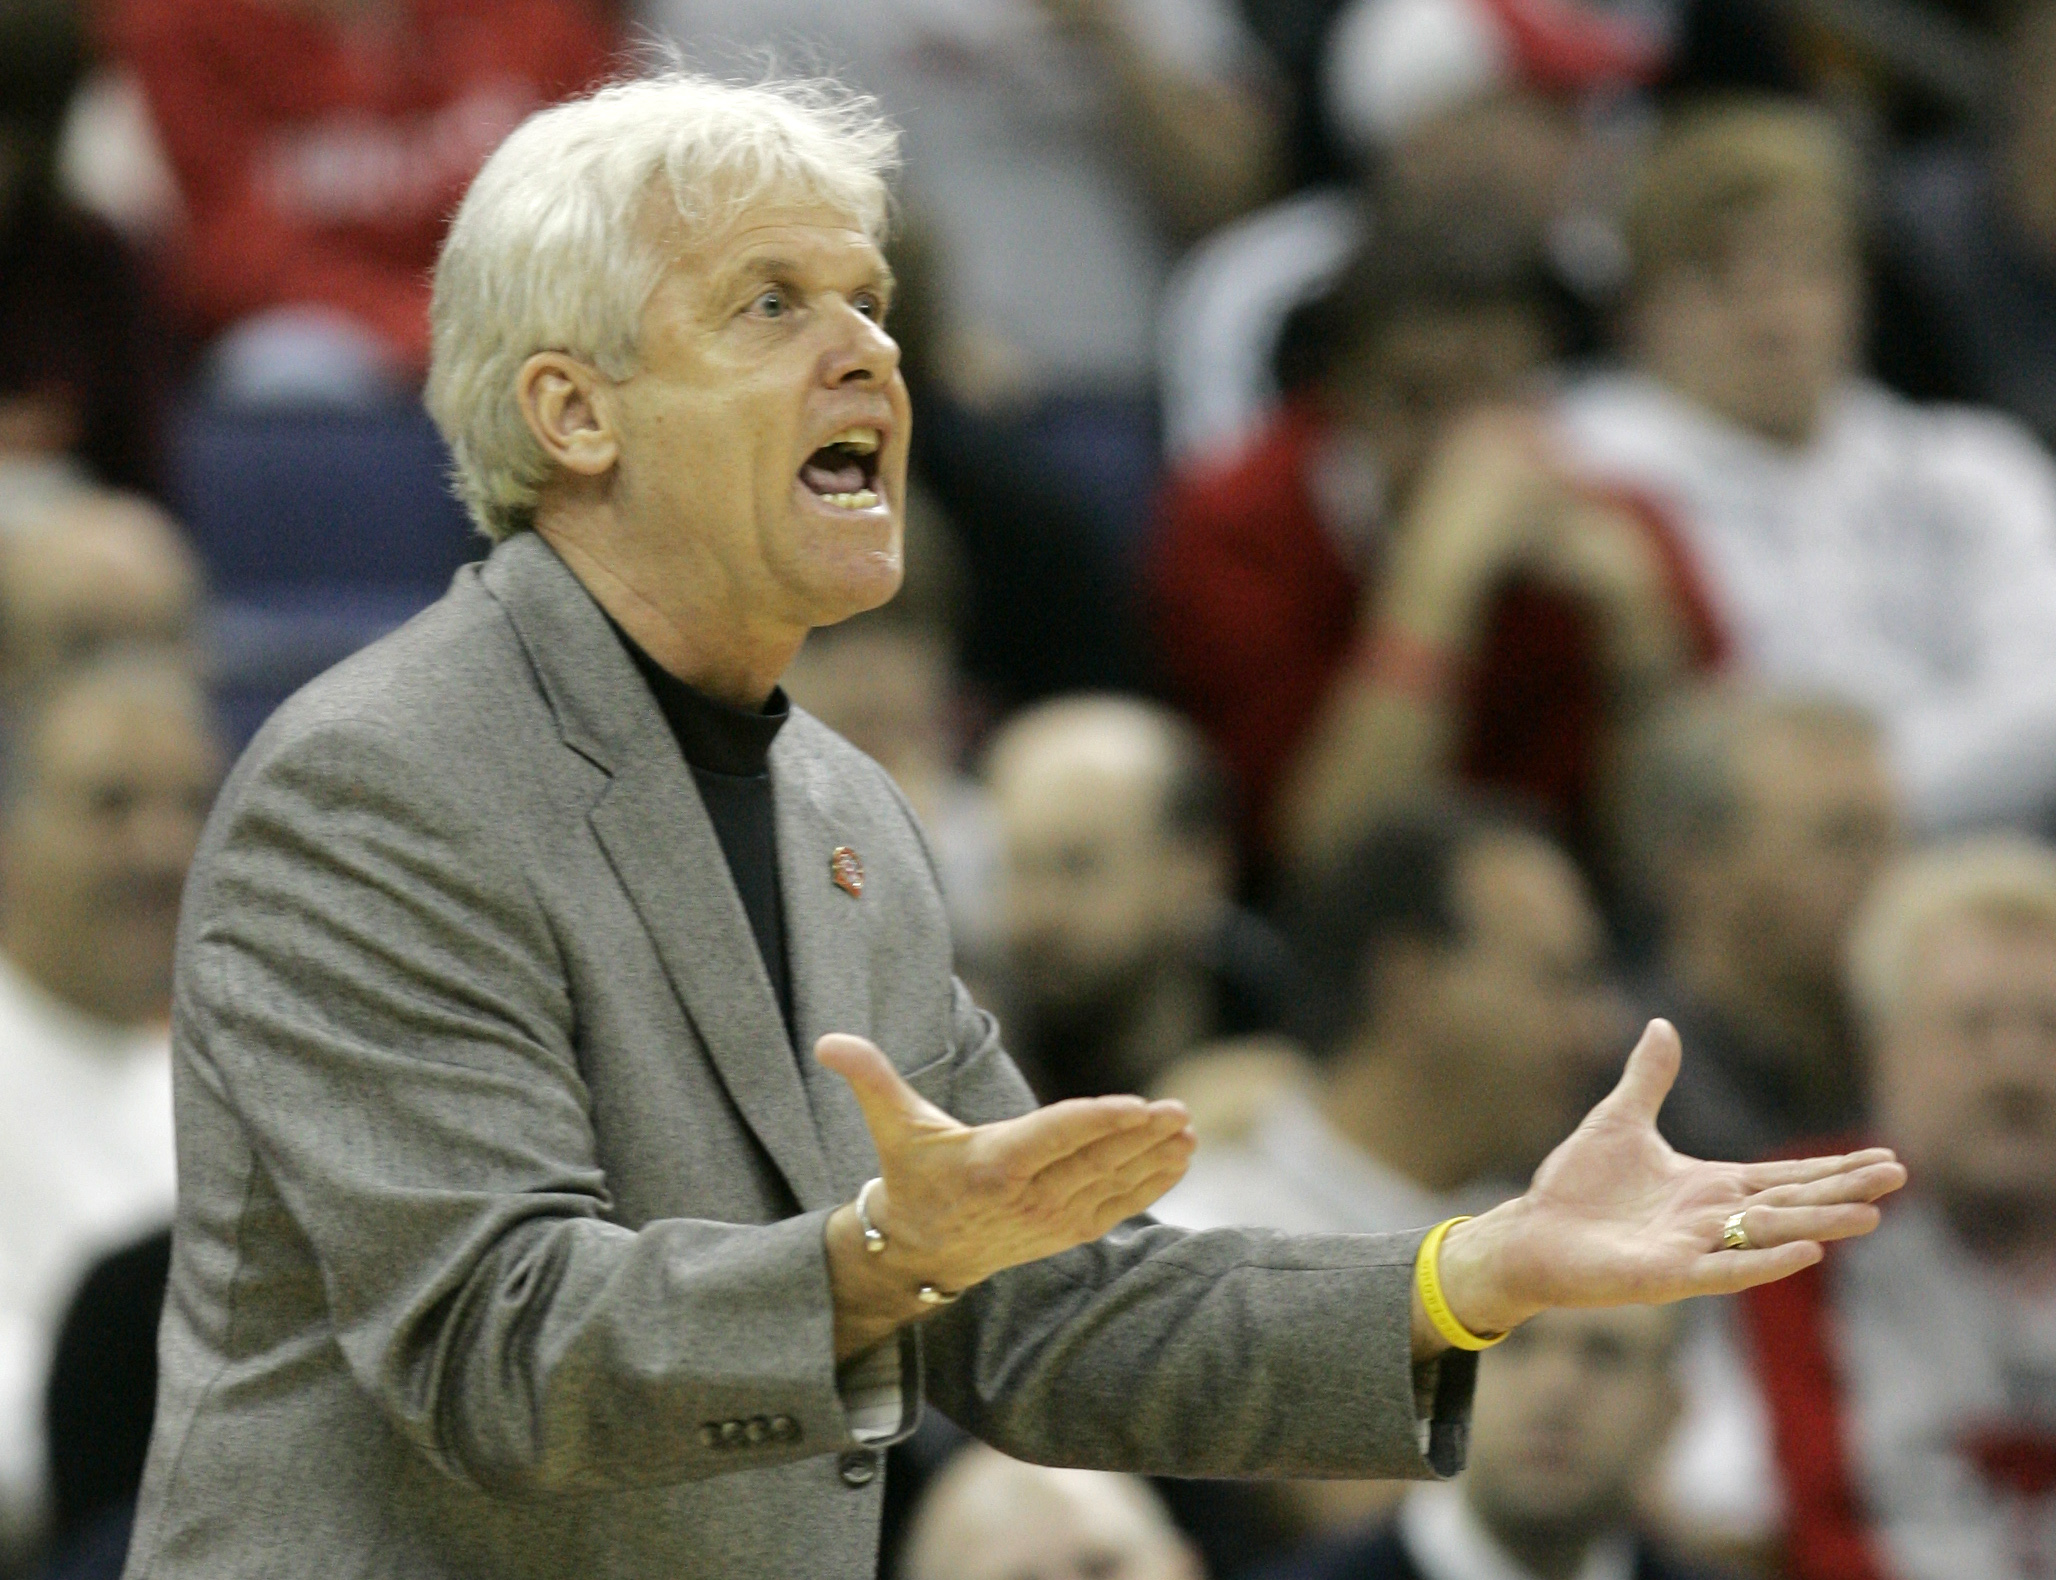 Holy Cross coach Ralph Willard protests a call Friday, March 16, 2007, during an NCAA first-round basketball game against Southern Illinois in Columbus, Ohio. (AP Photo/Tony Dejak)